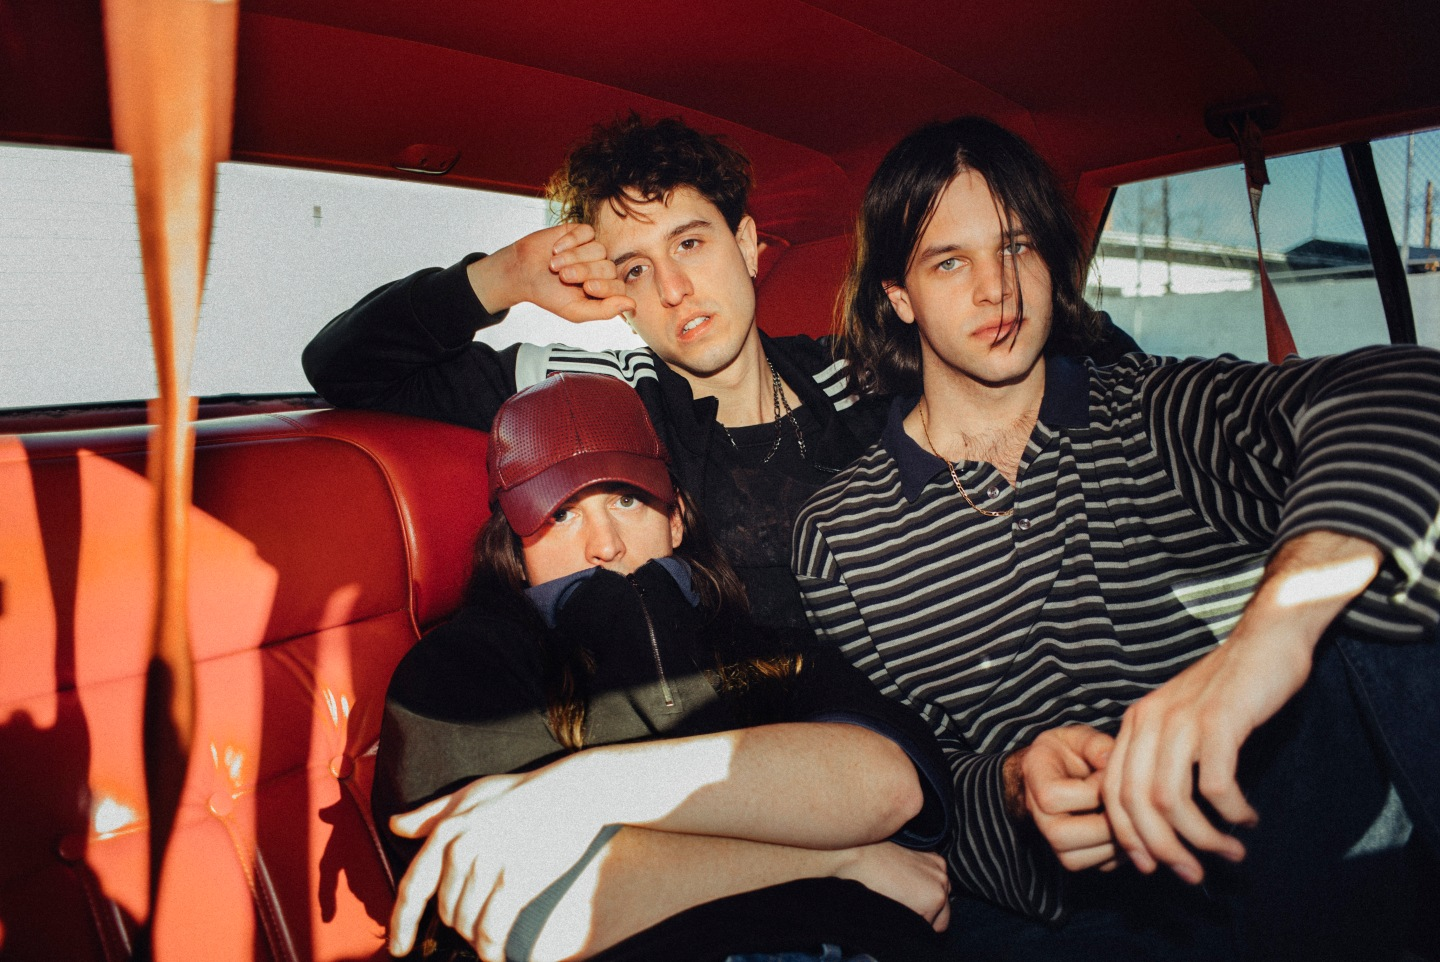 Catching Up With Beach Fossils, New York's Resident Daydreamers